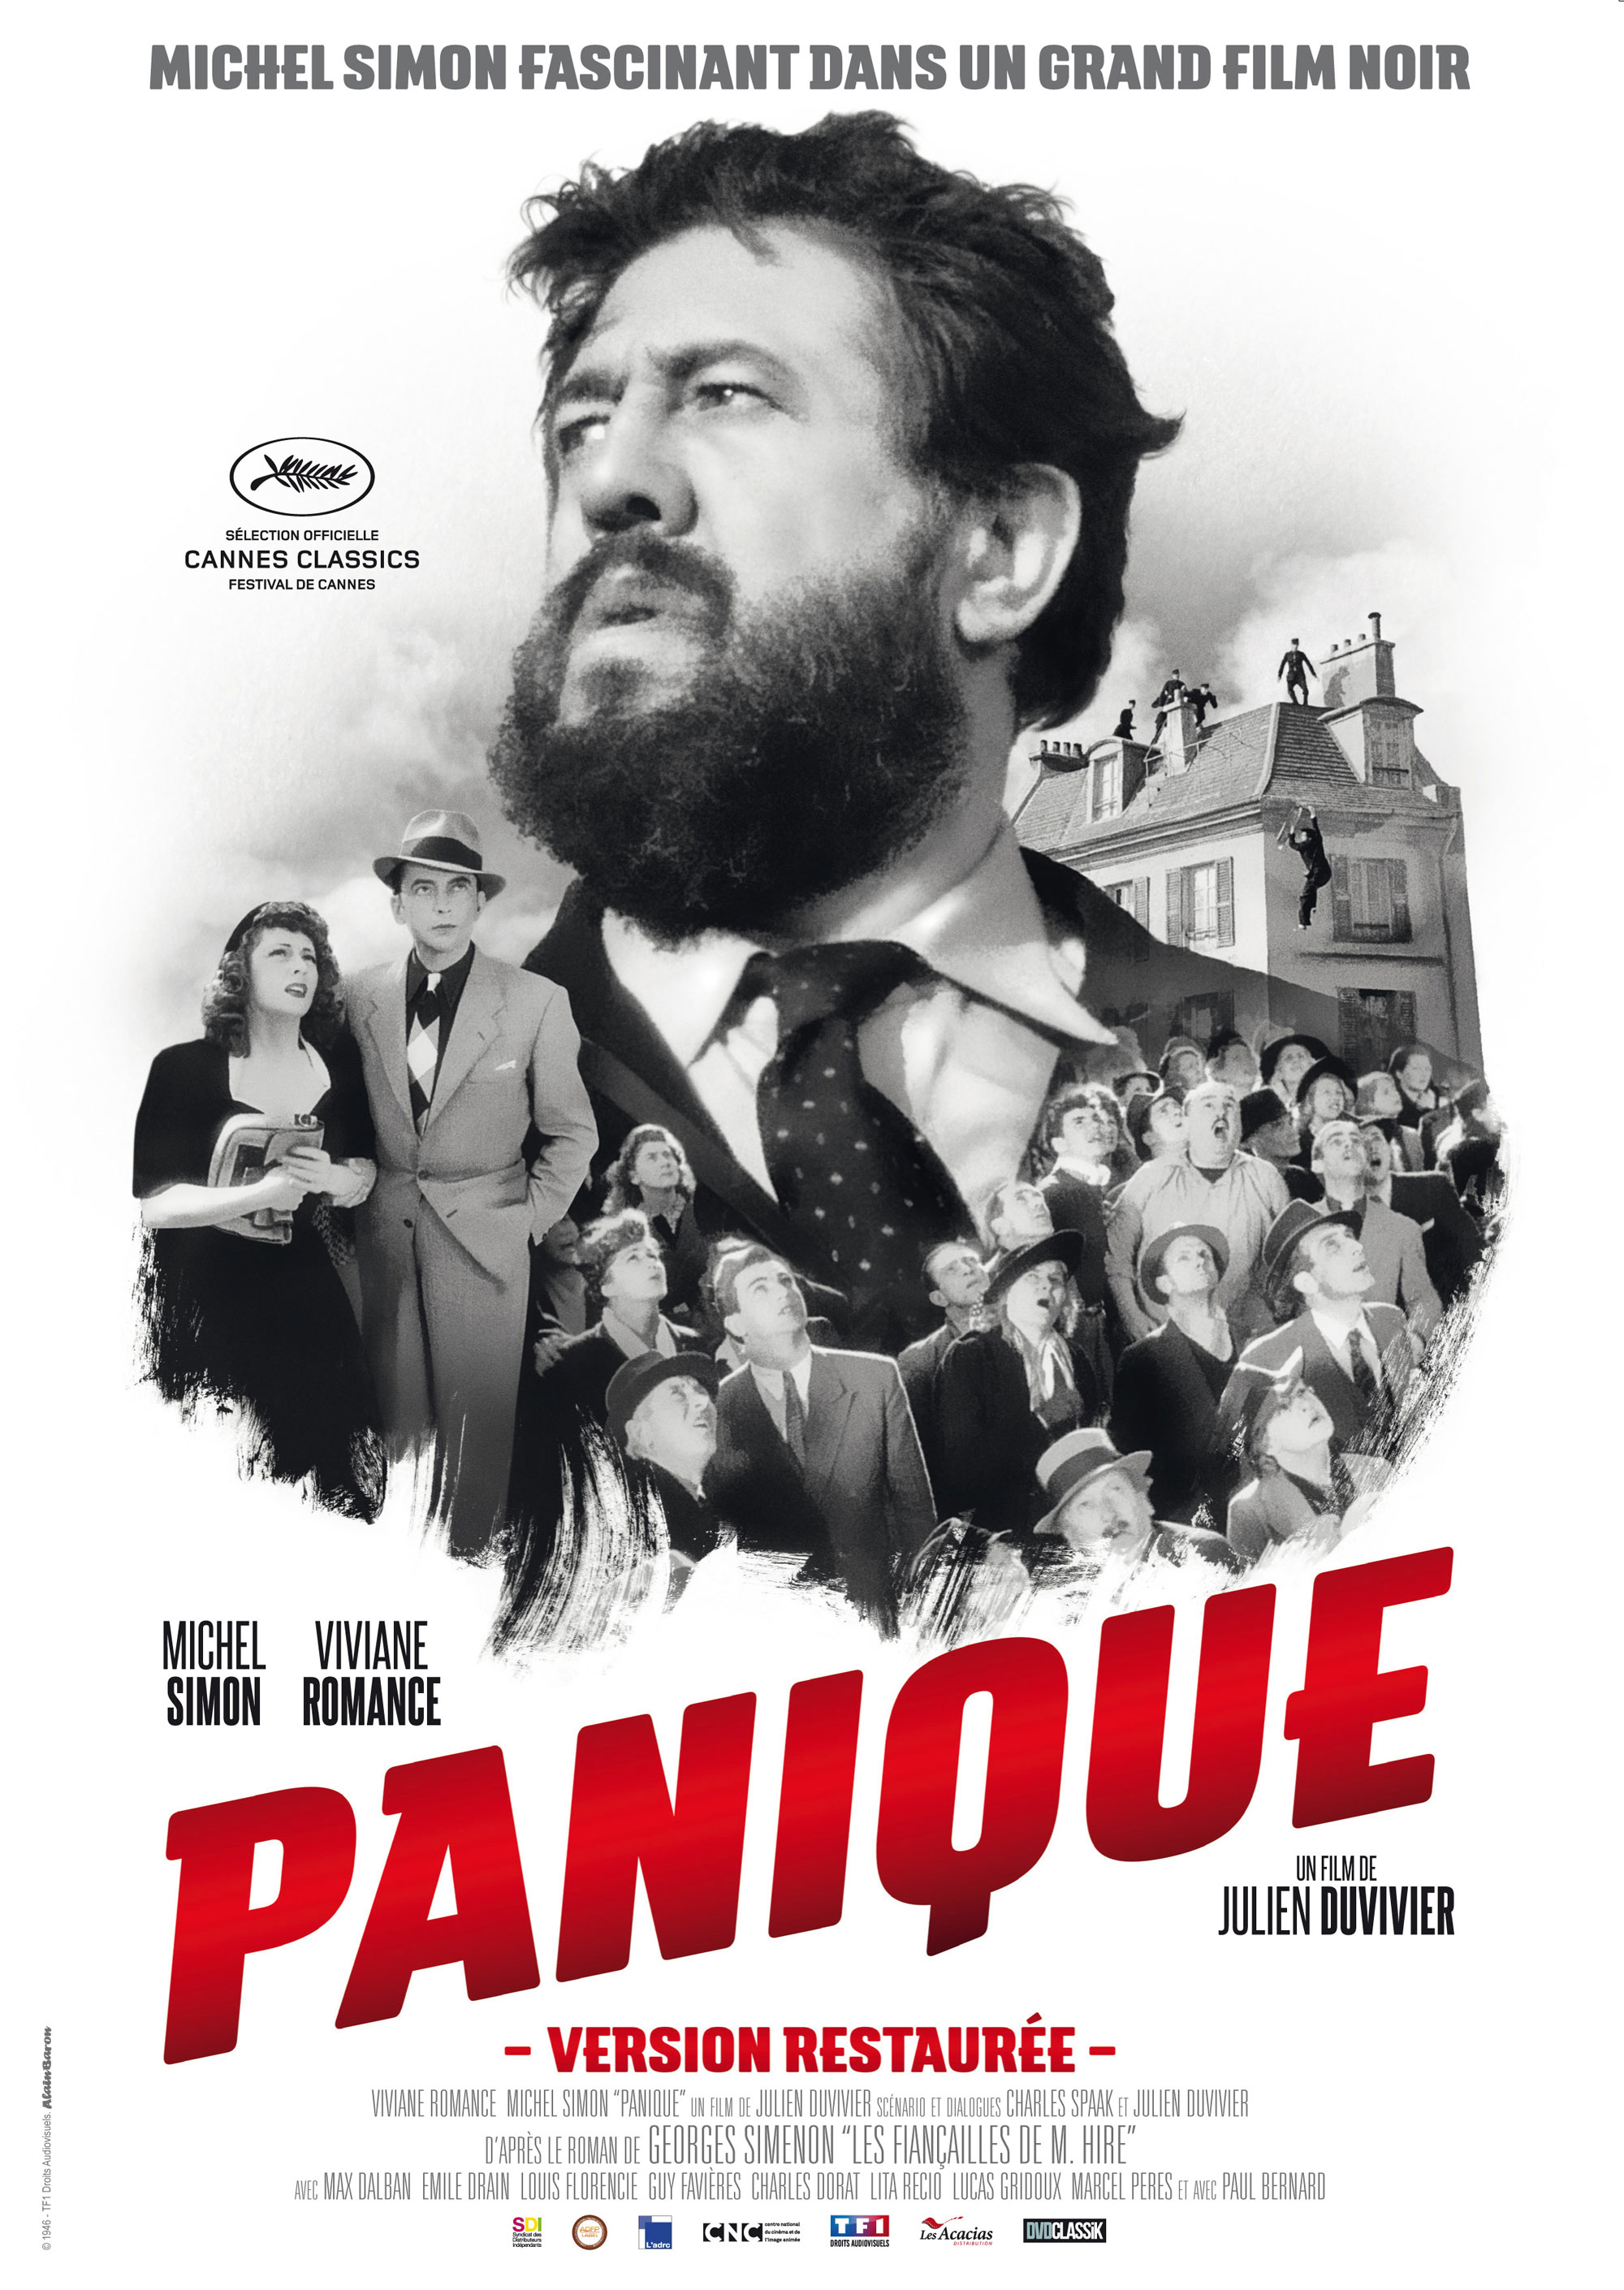 Panique - Affiche Rep. 2016